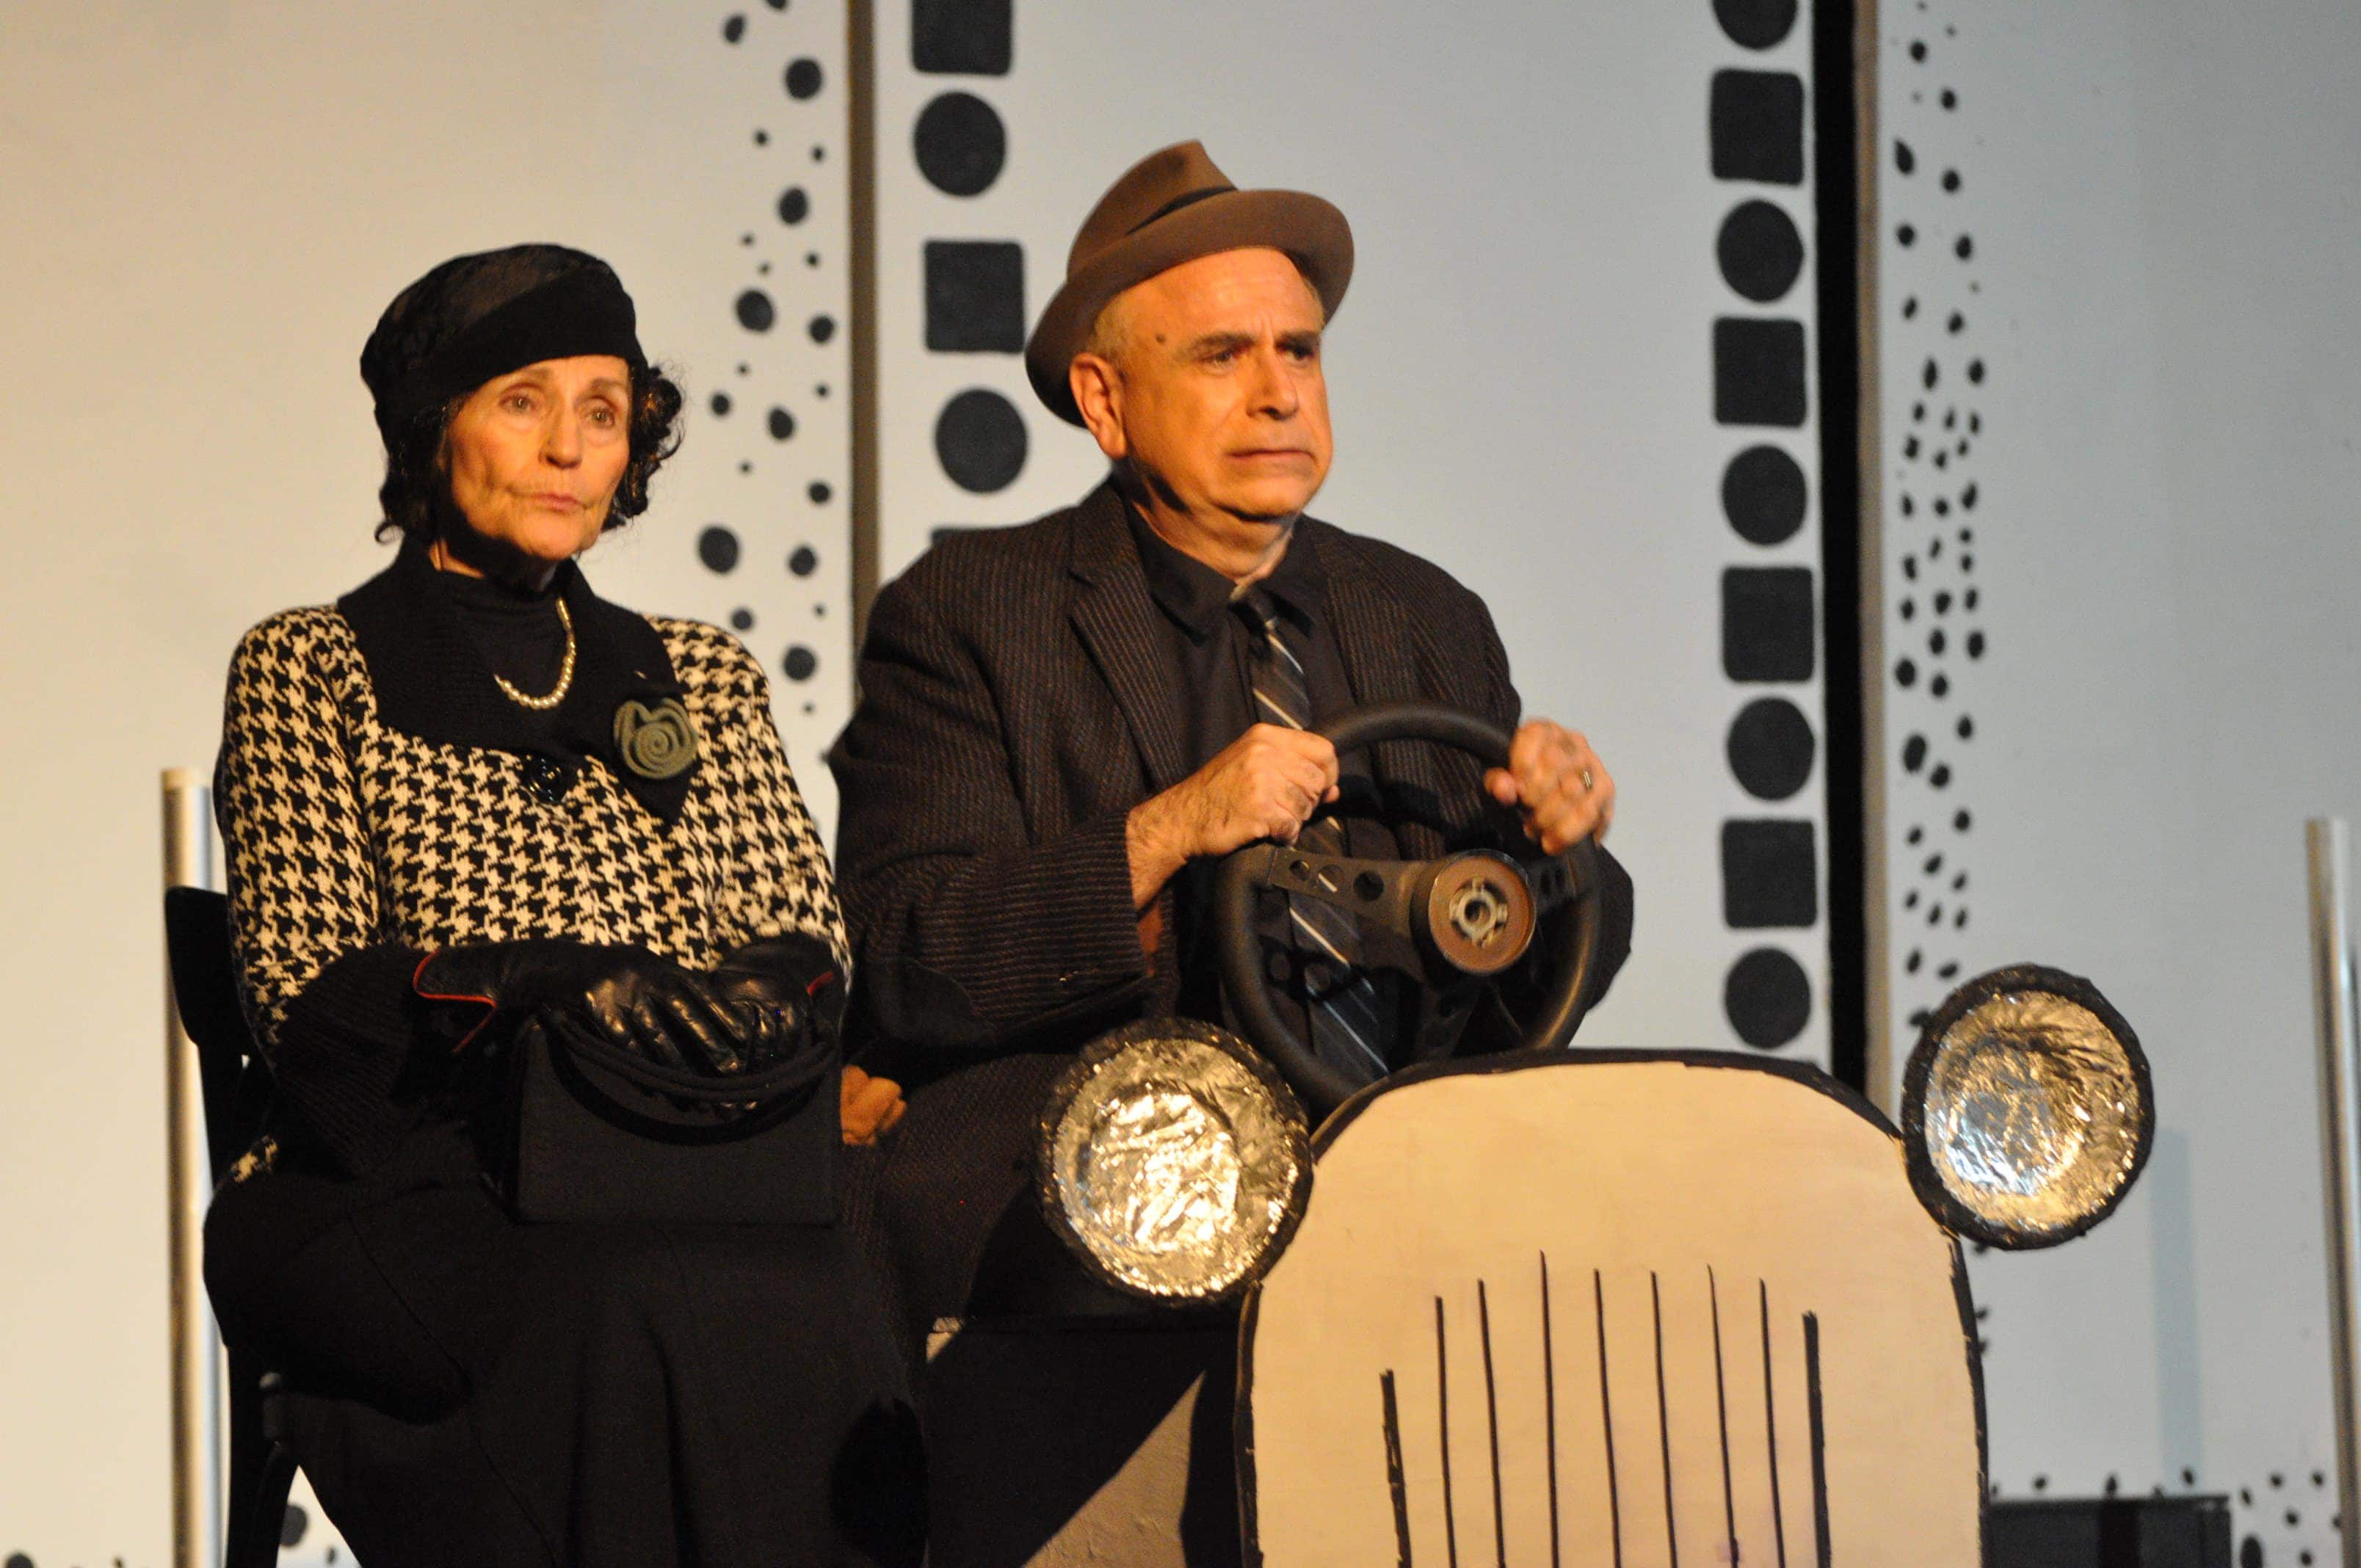 Left to Right: Adriana Hardy and Steven Rosenthal portray Mr. and Mrs. Walter Mitty in 'The Secret Life of Walter Mitty.'